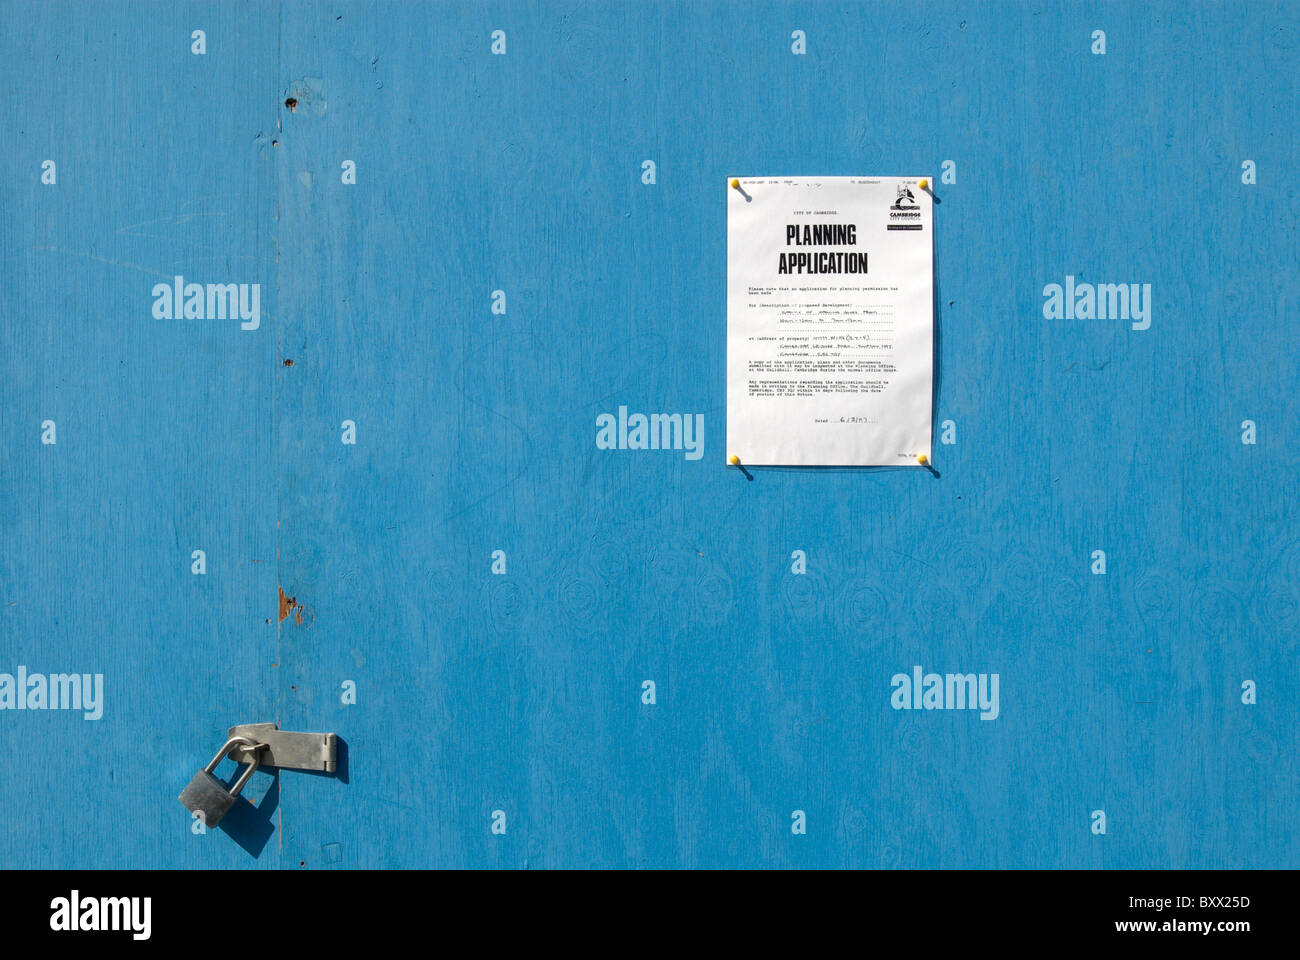 Planning application sign - Stock Image